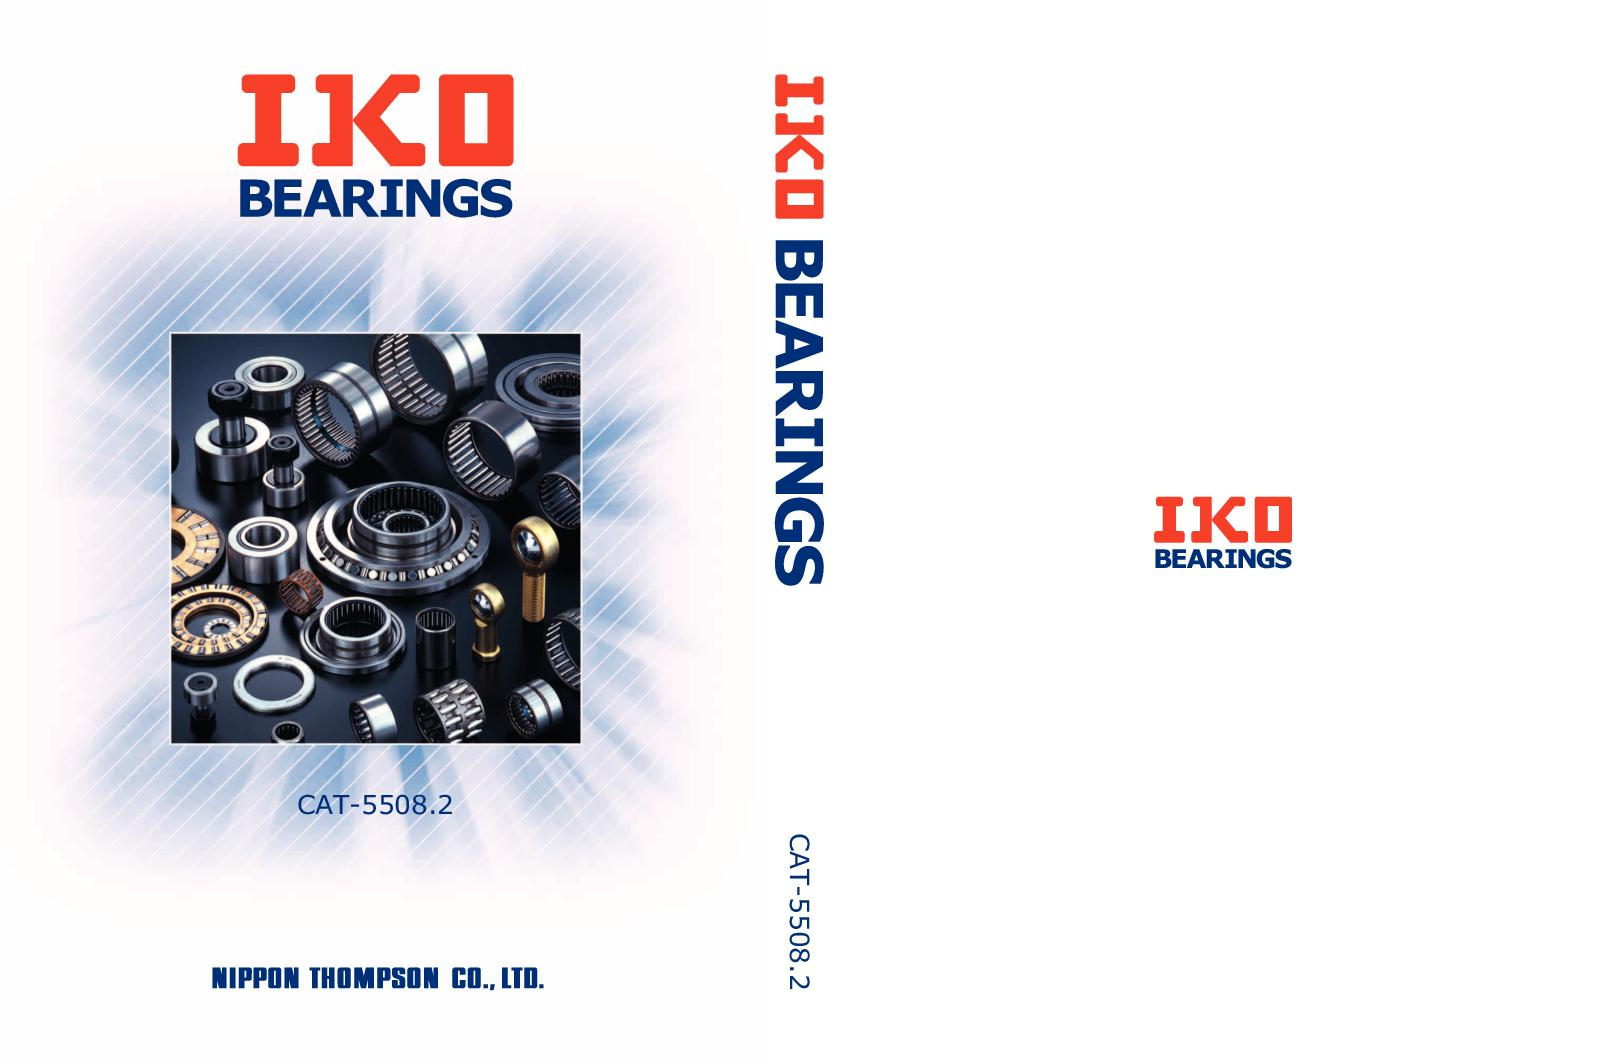 KT101412 Needle Roller Cage Bearing ID Bore Diameter 10mm x Outer OD 14mm x 12mm